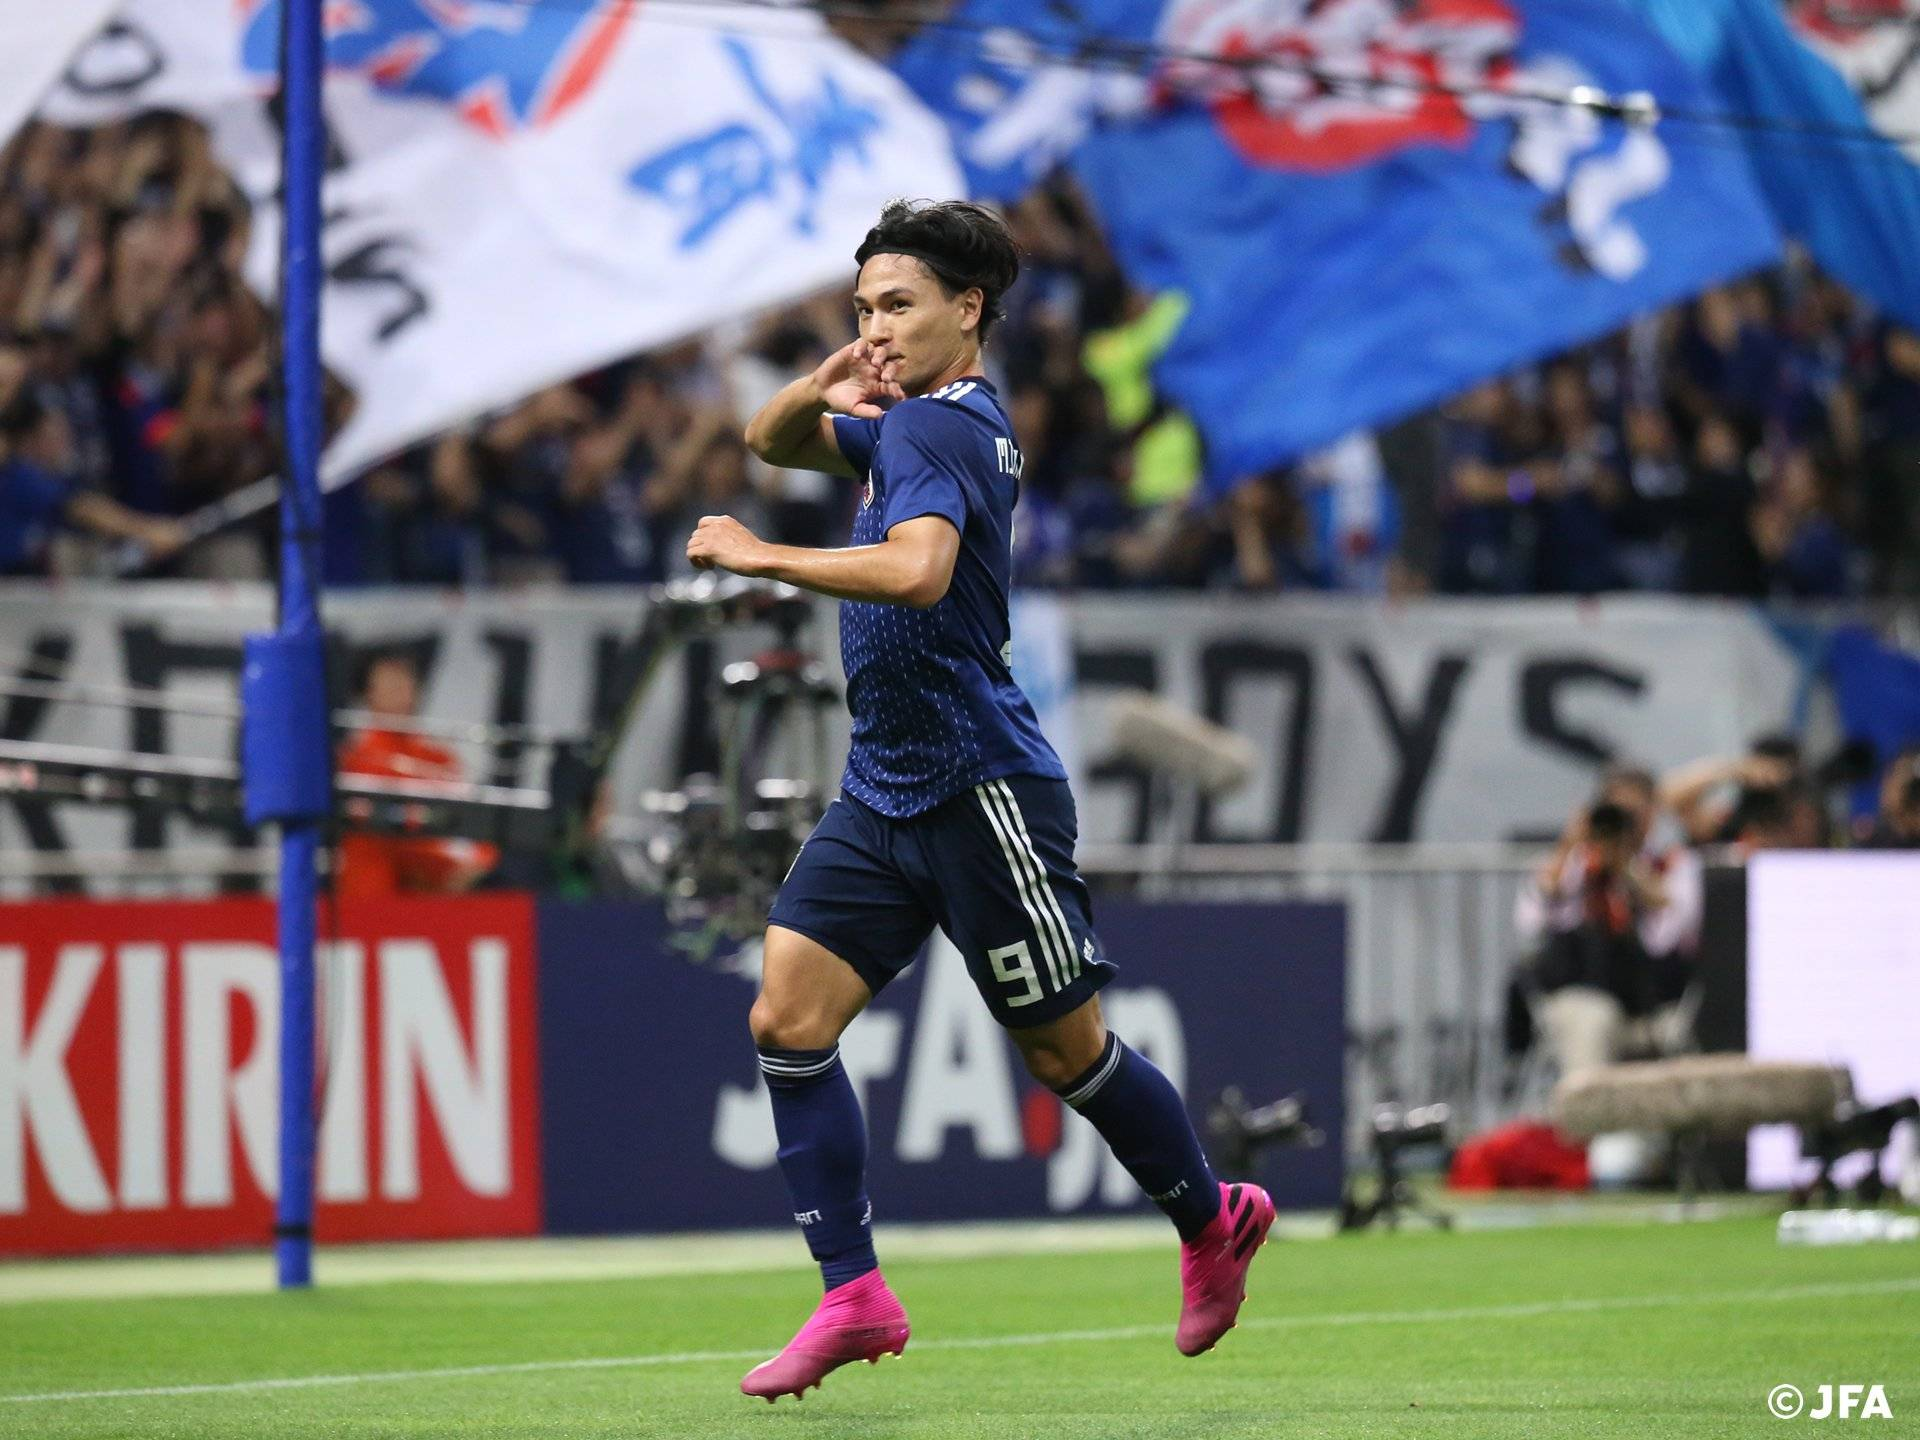 Five Things We Learned from Japan's 6-0 Demolition of Mongolia